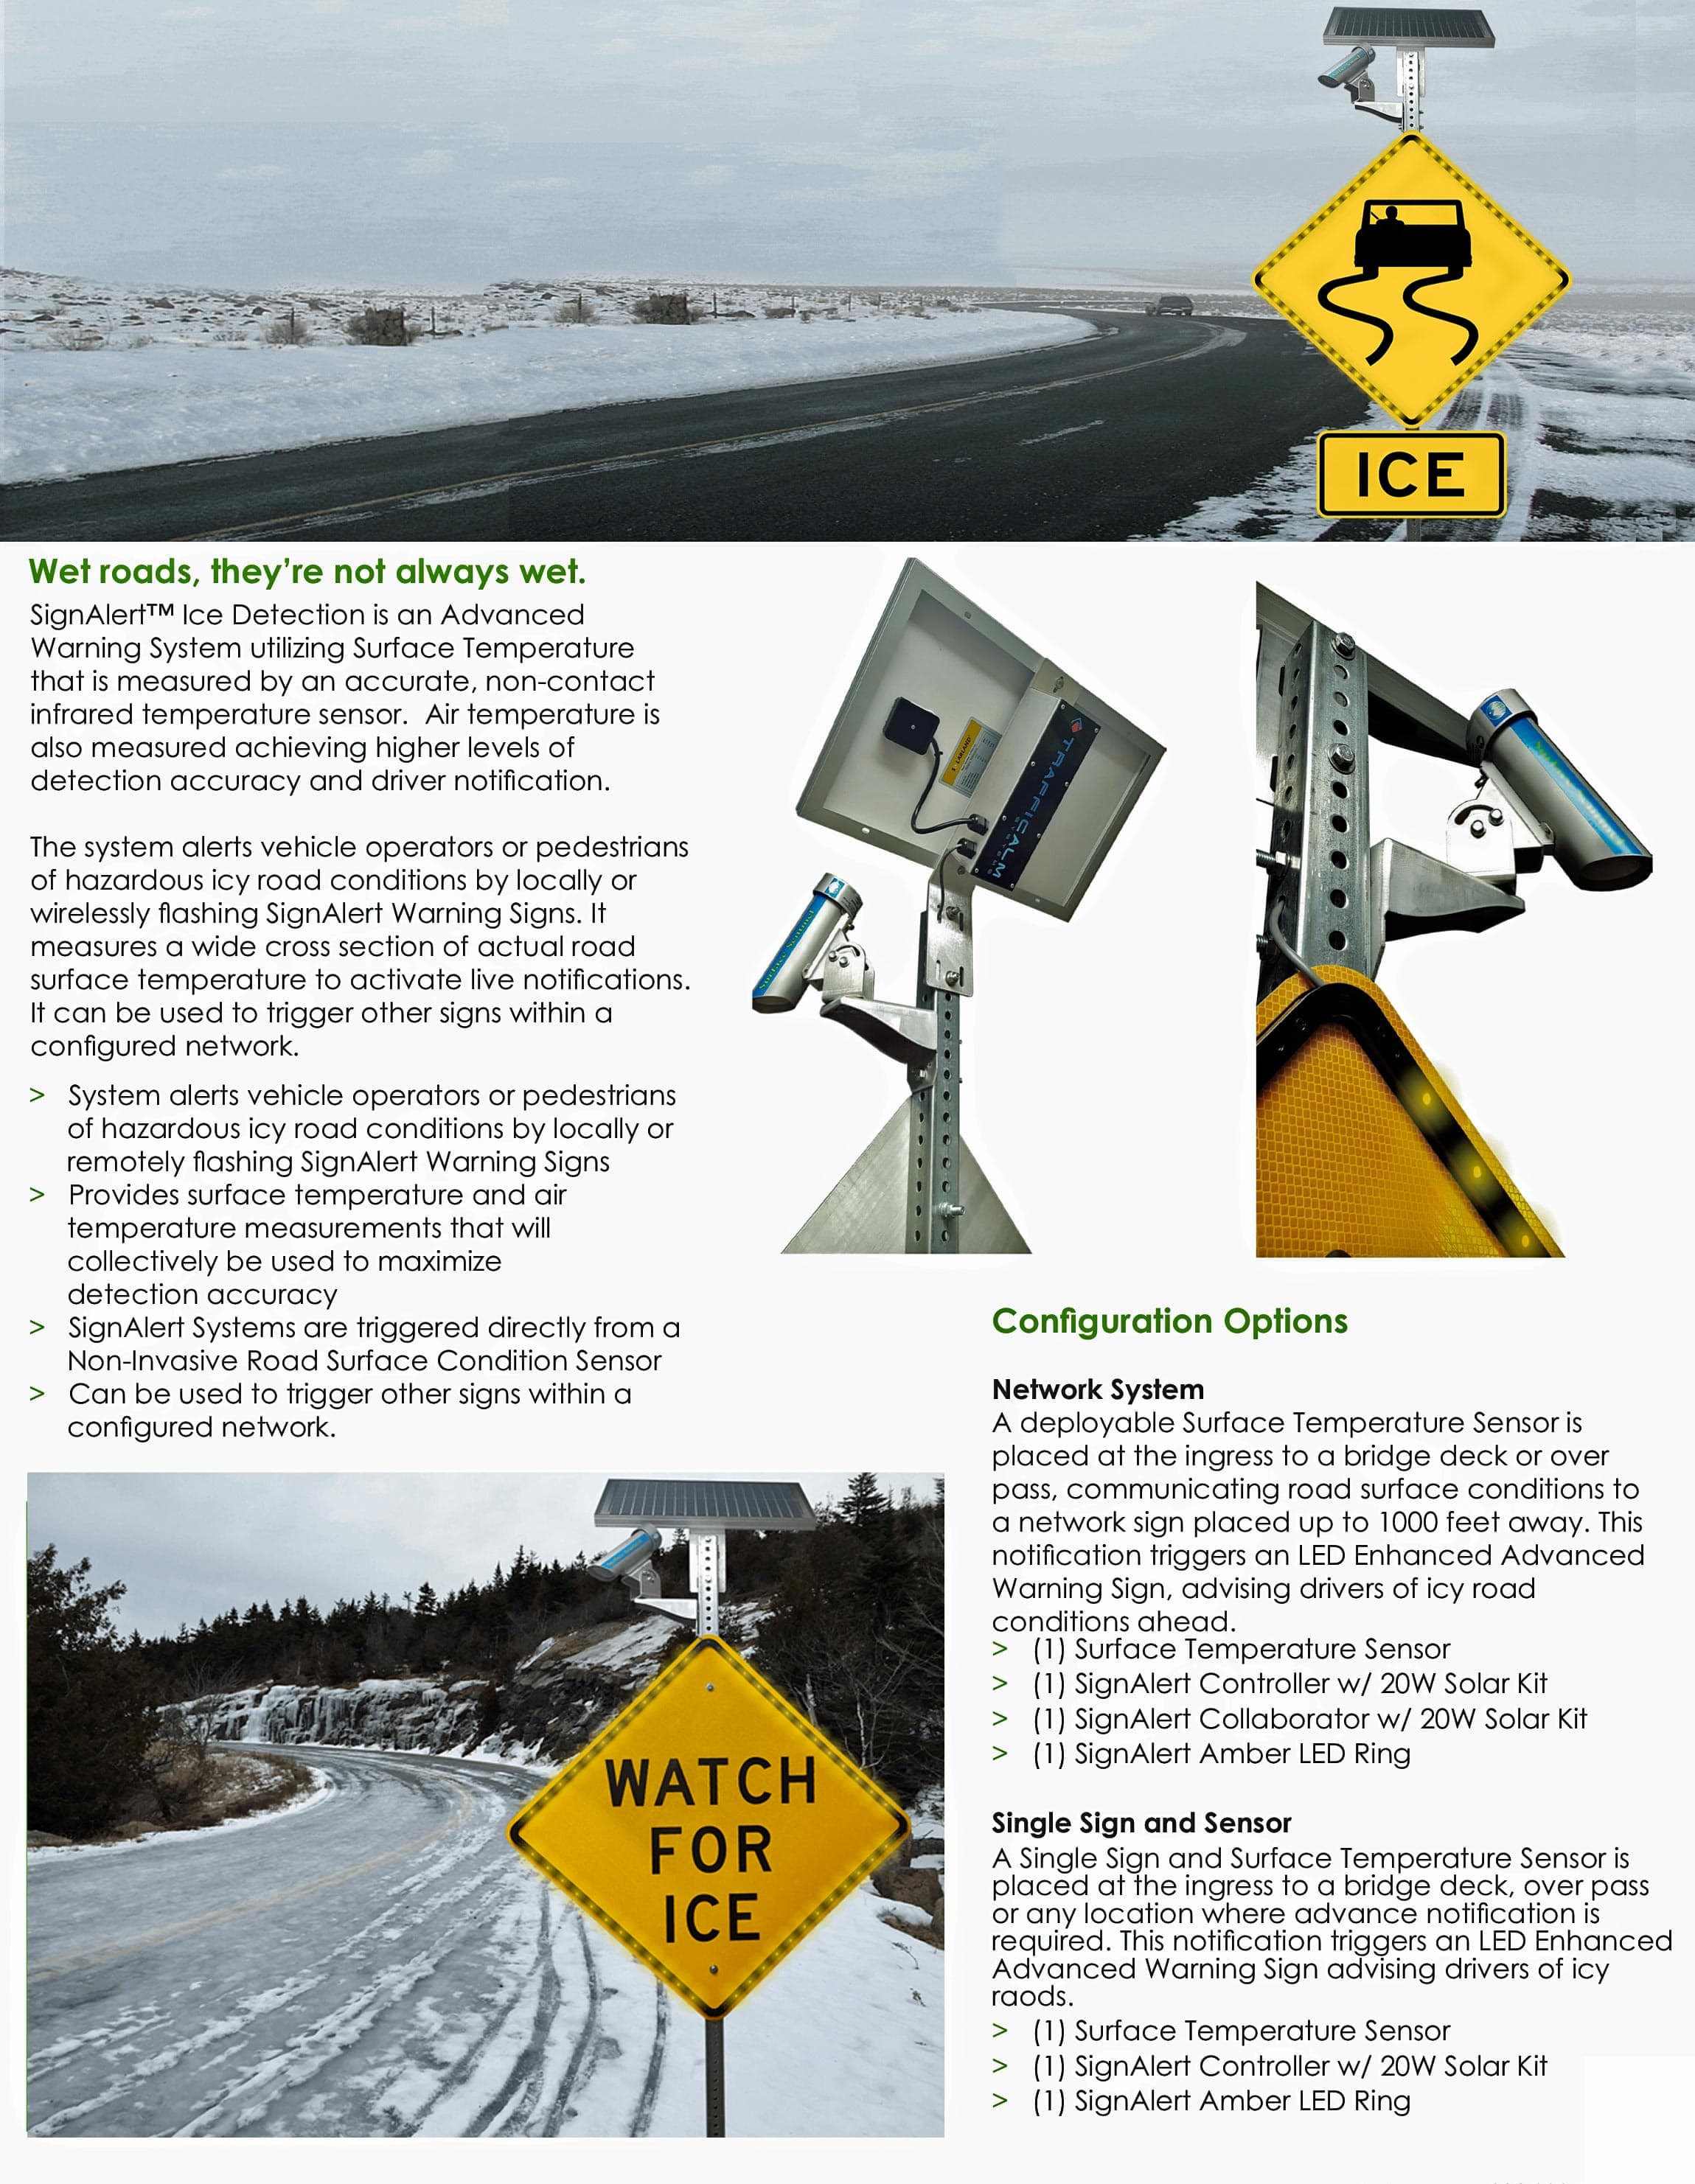 Sign Alert Ice Detection